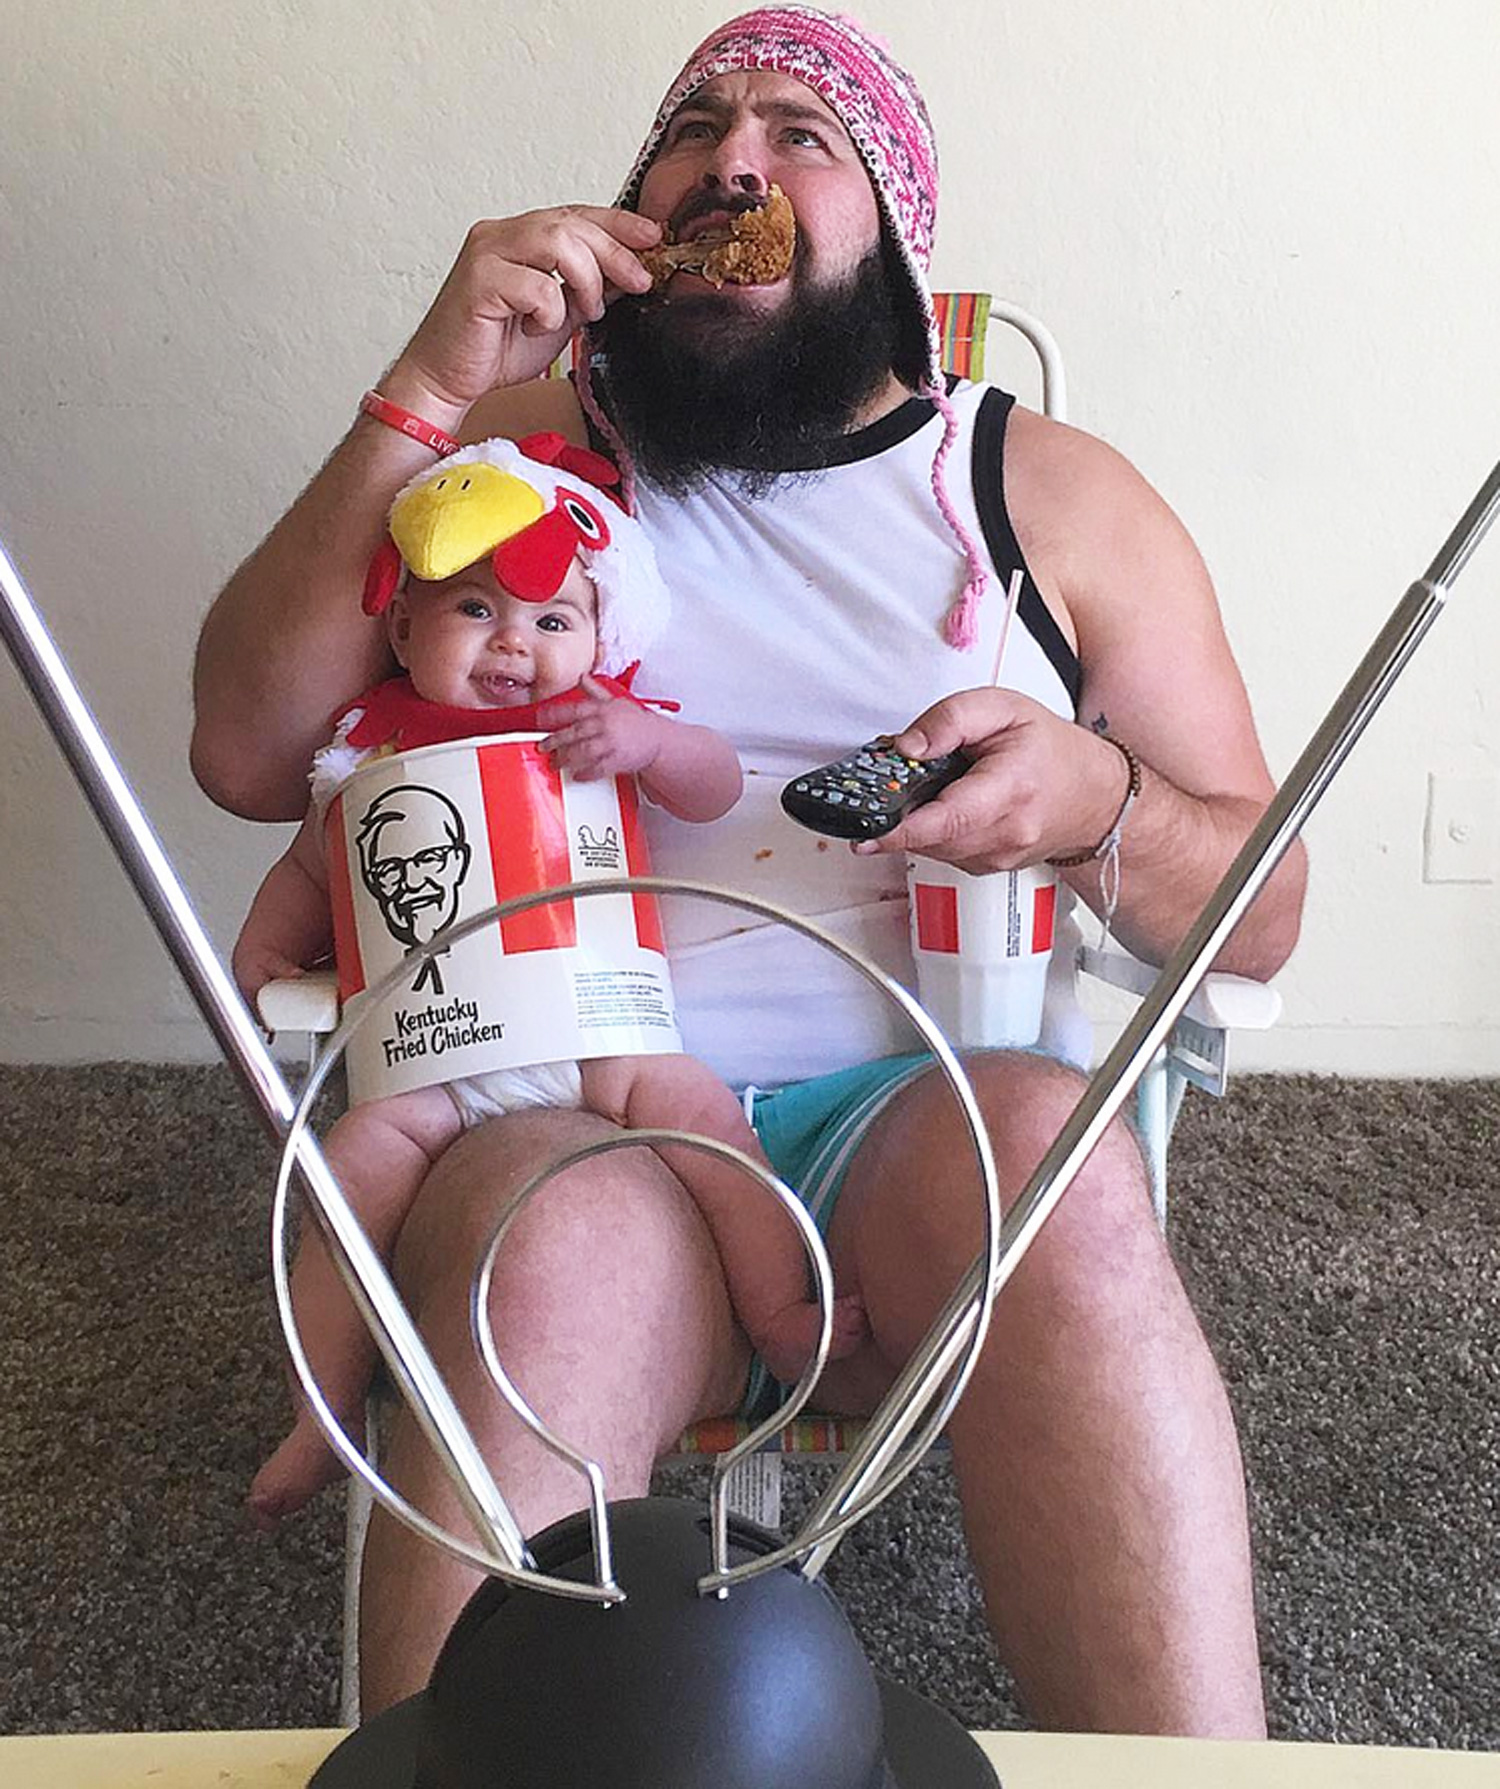 California Dad Dresses Baby as KFC Takeout (and More!) in Greatest Daddy-Daughter Shoot: 'She Loves Every Second'